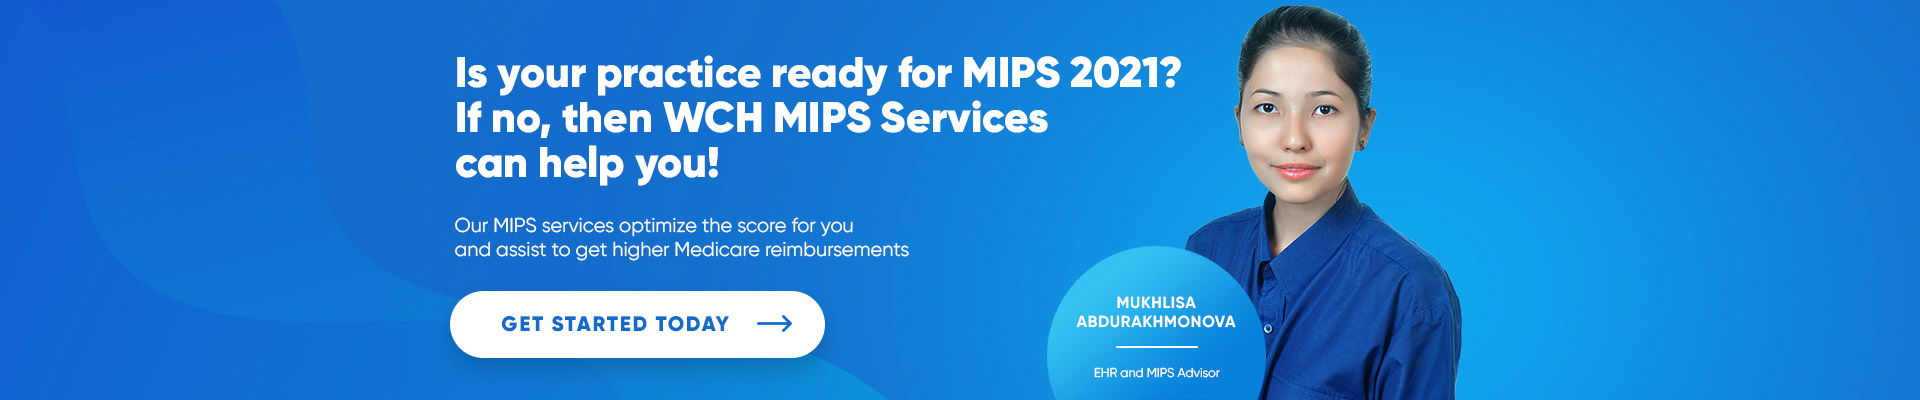 MIPS banner